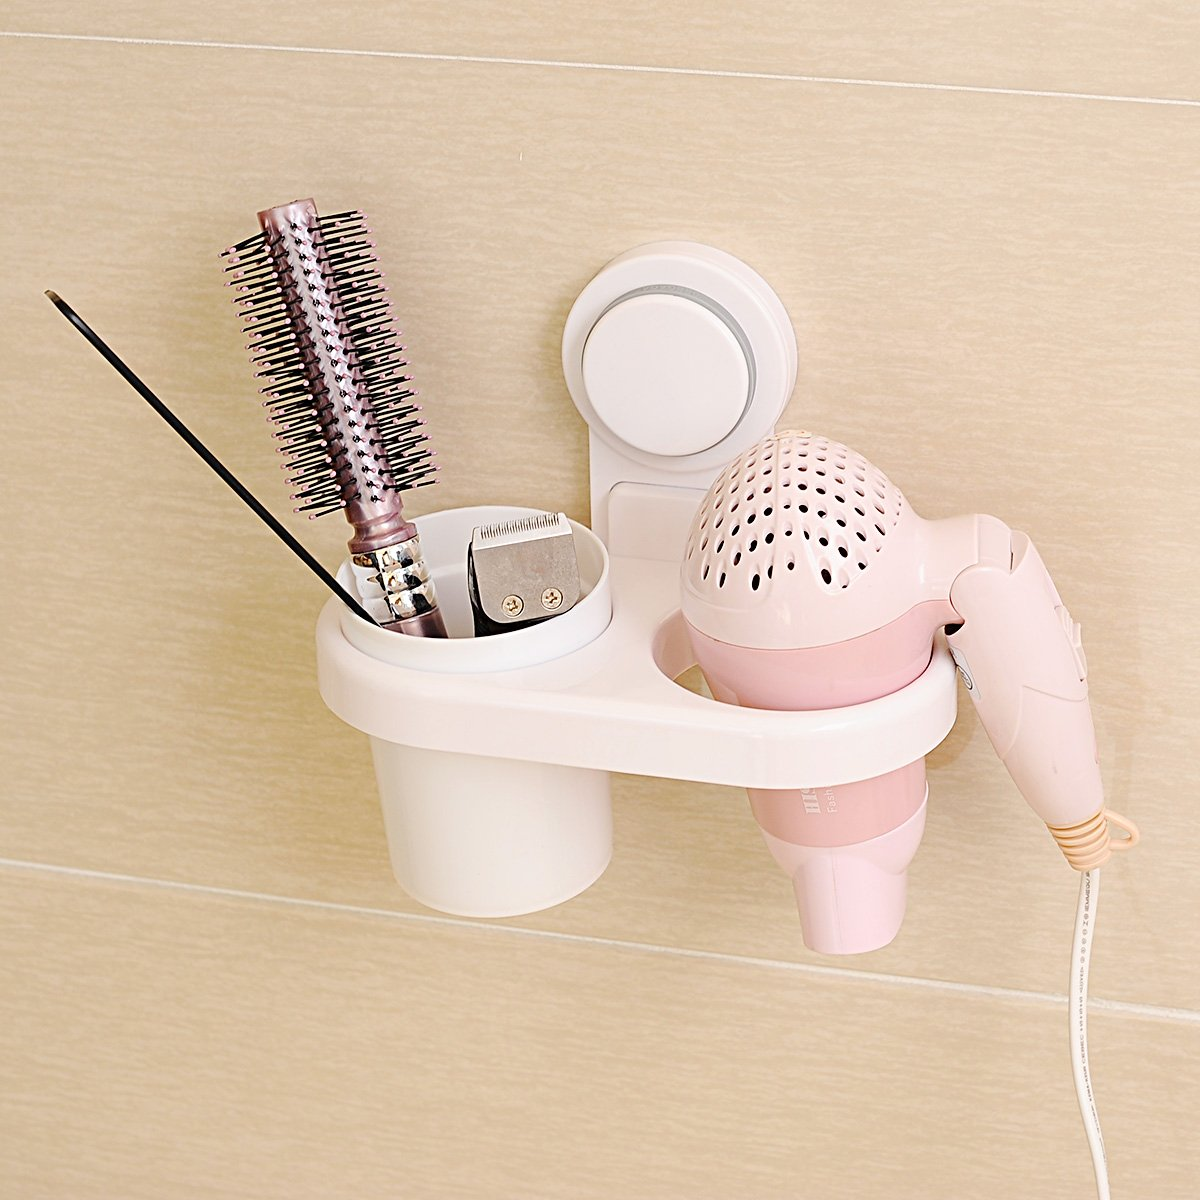 OLQMY-Strong Suction Cup, Hair Dryer Frame, Suction Wall, Air Drum Rack, Wall Hanging Cup, Hair Dryer Frame